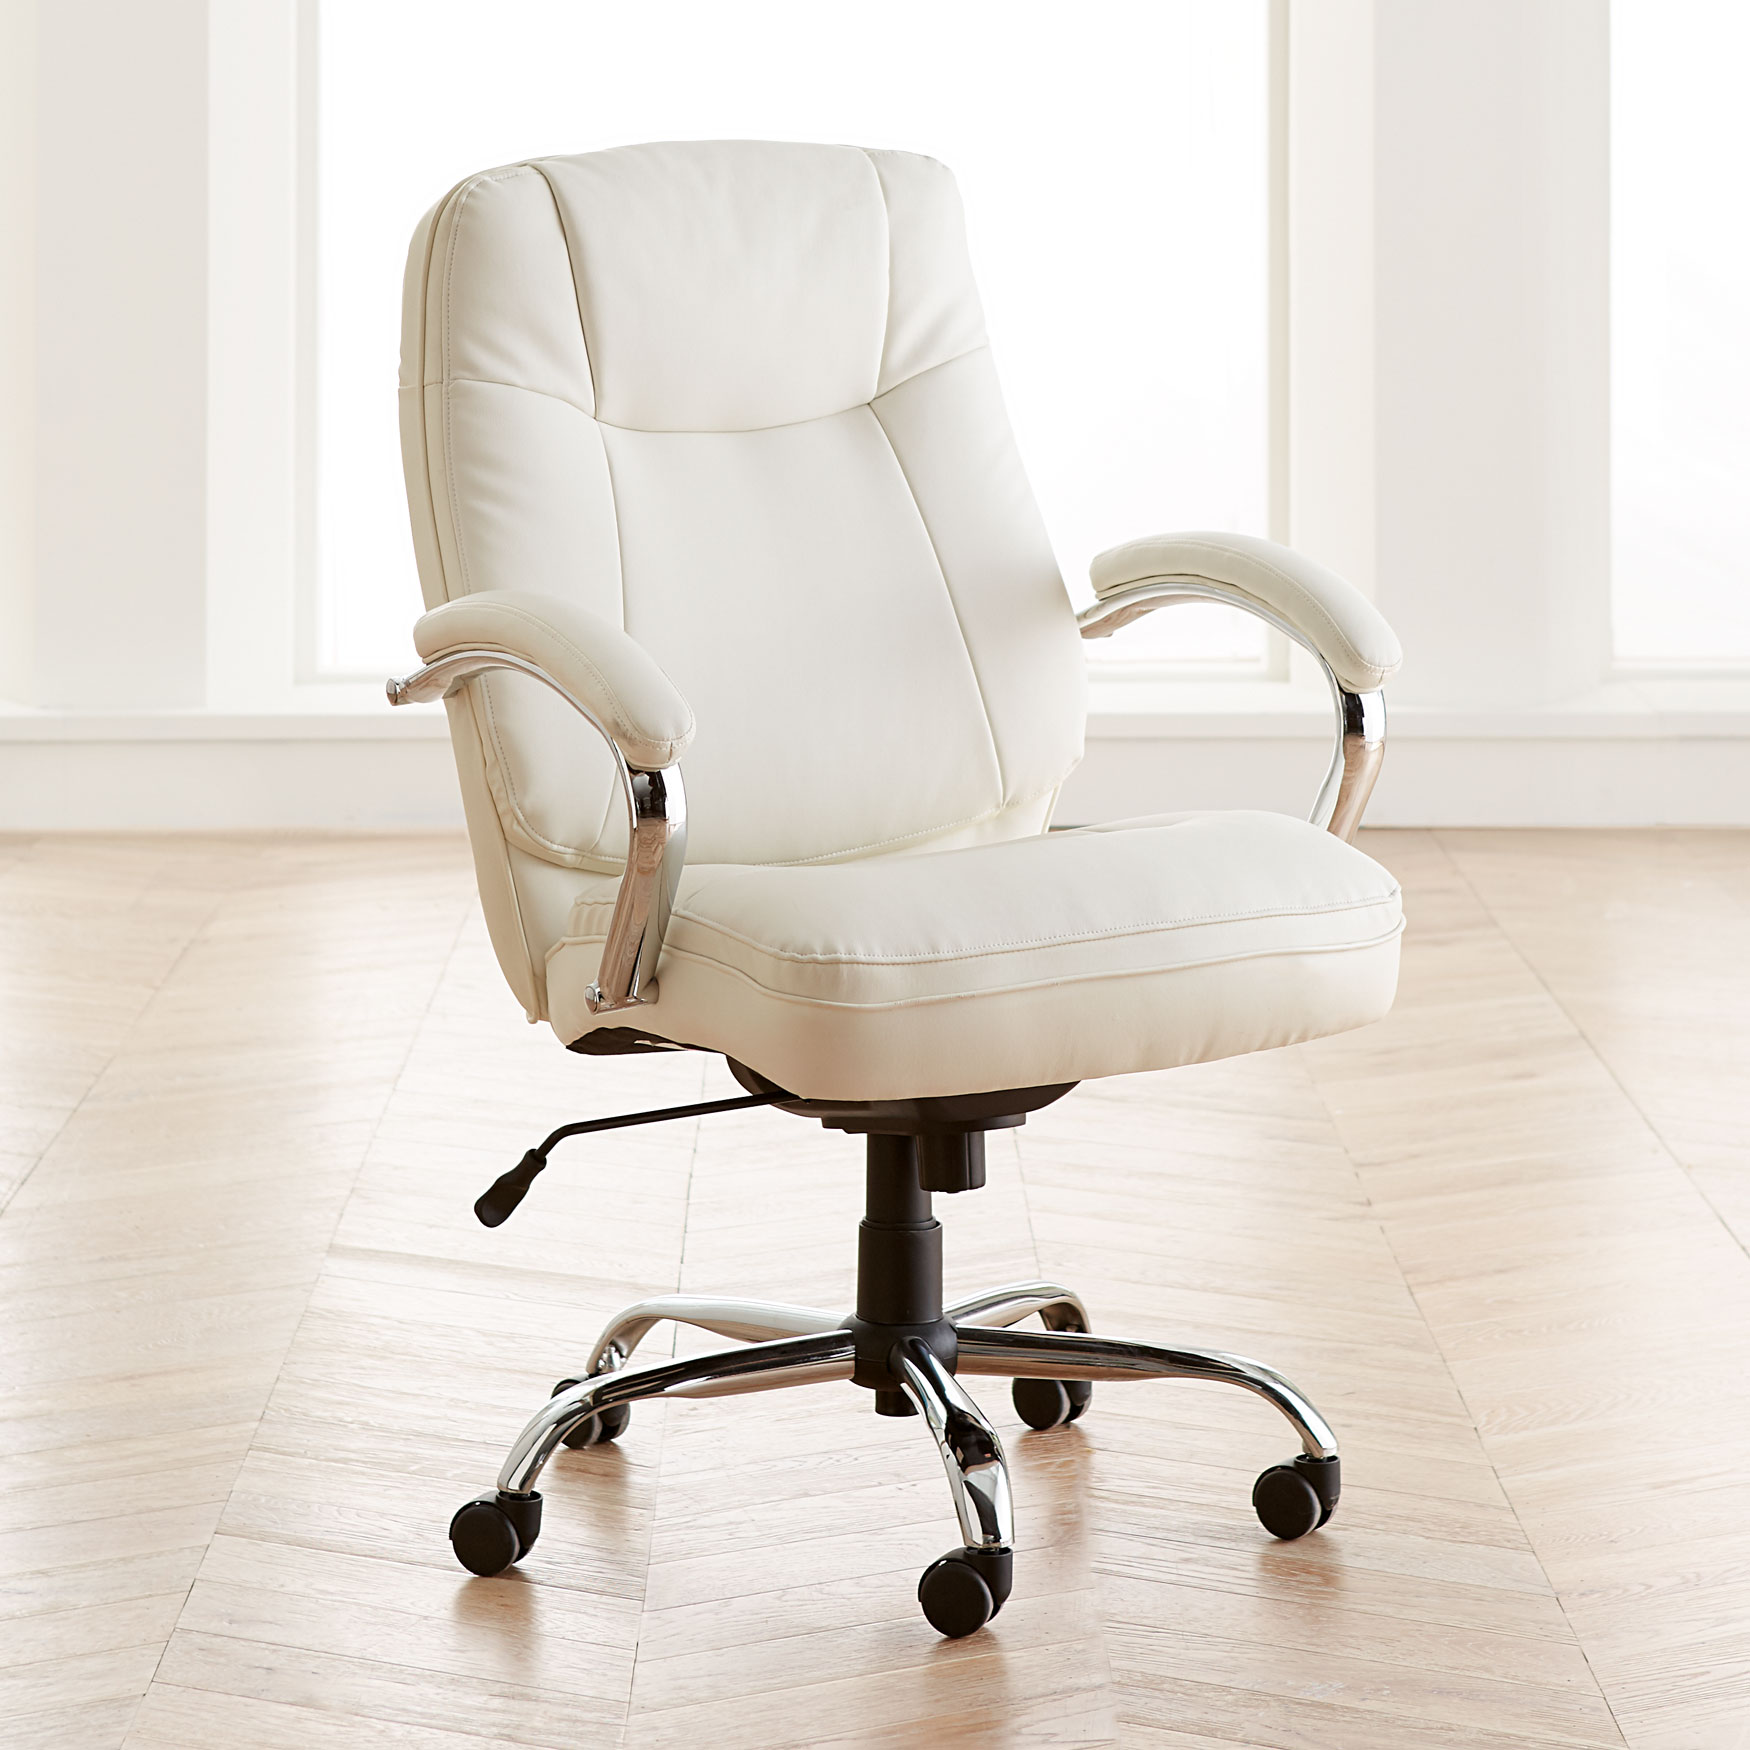 Extra Wide Woman's Office Chair,